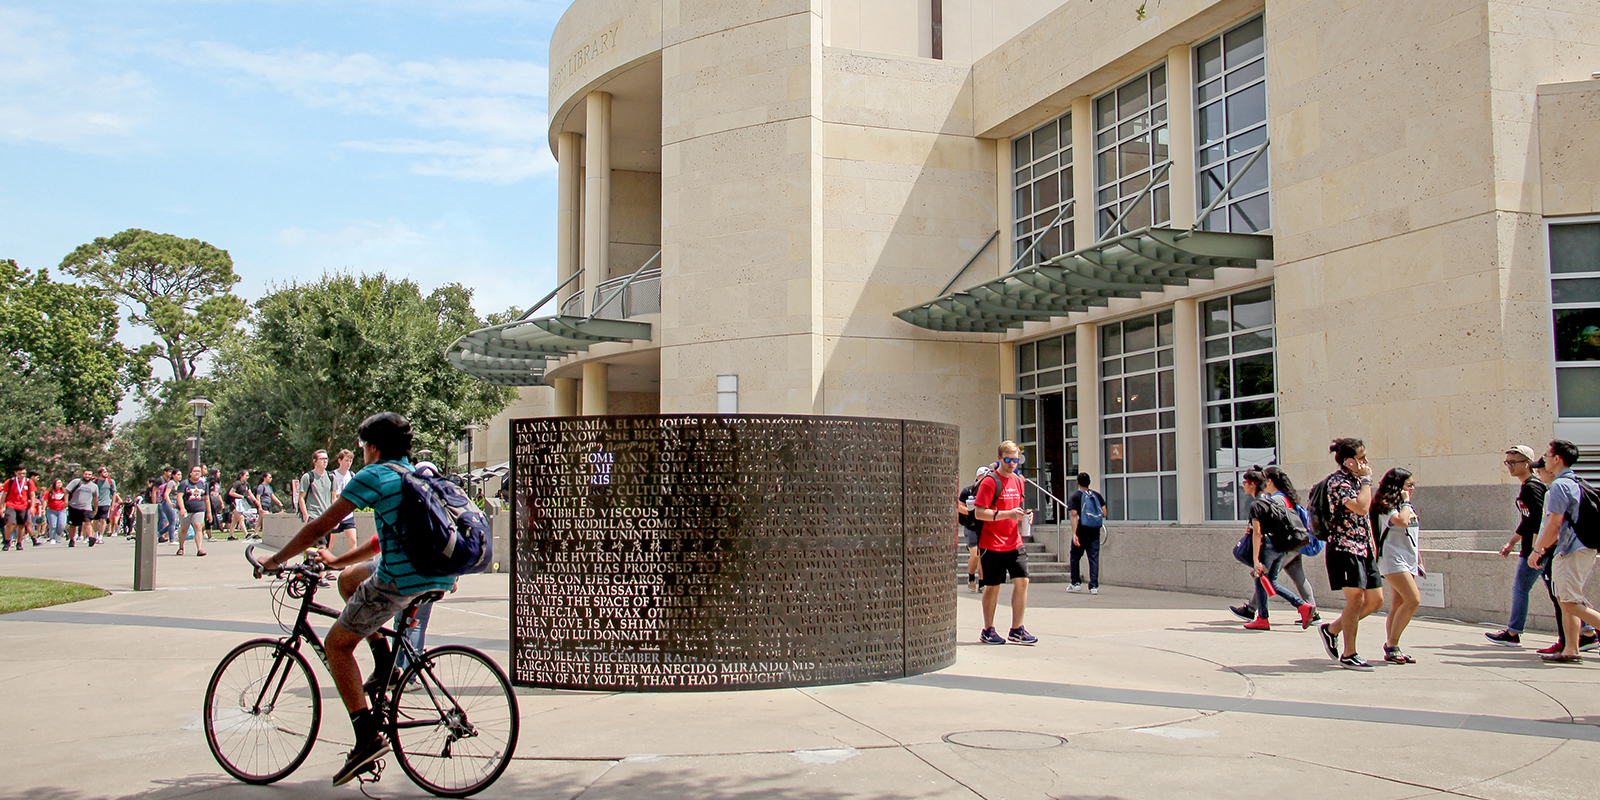 outdoor photos of the MD Anderson Library